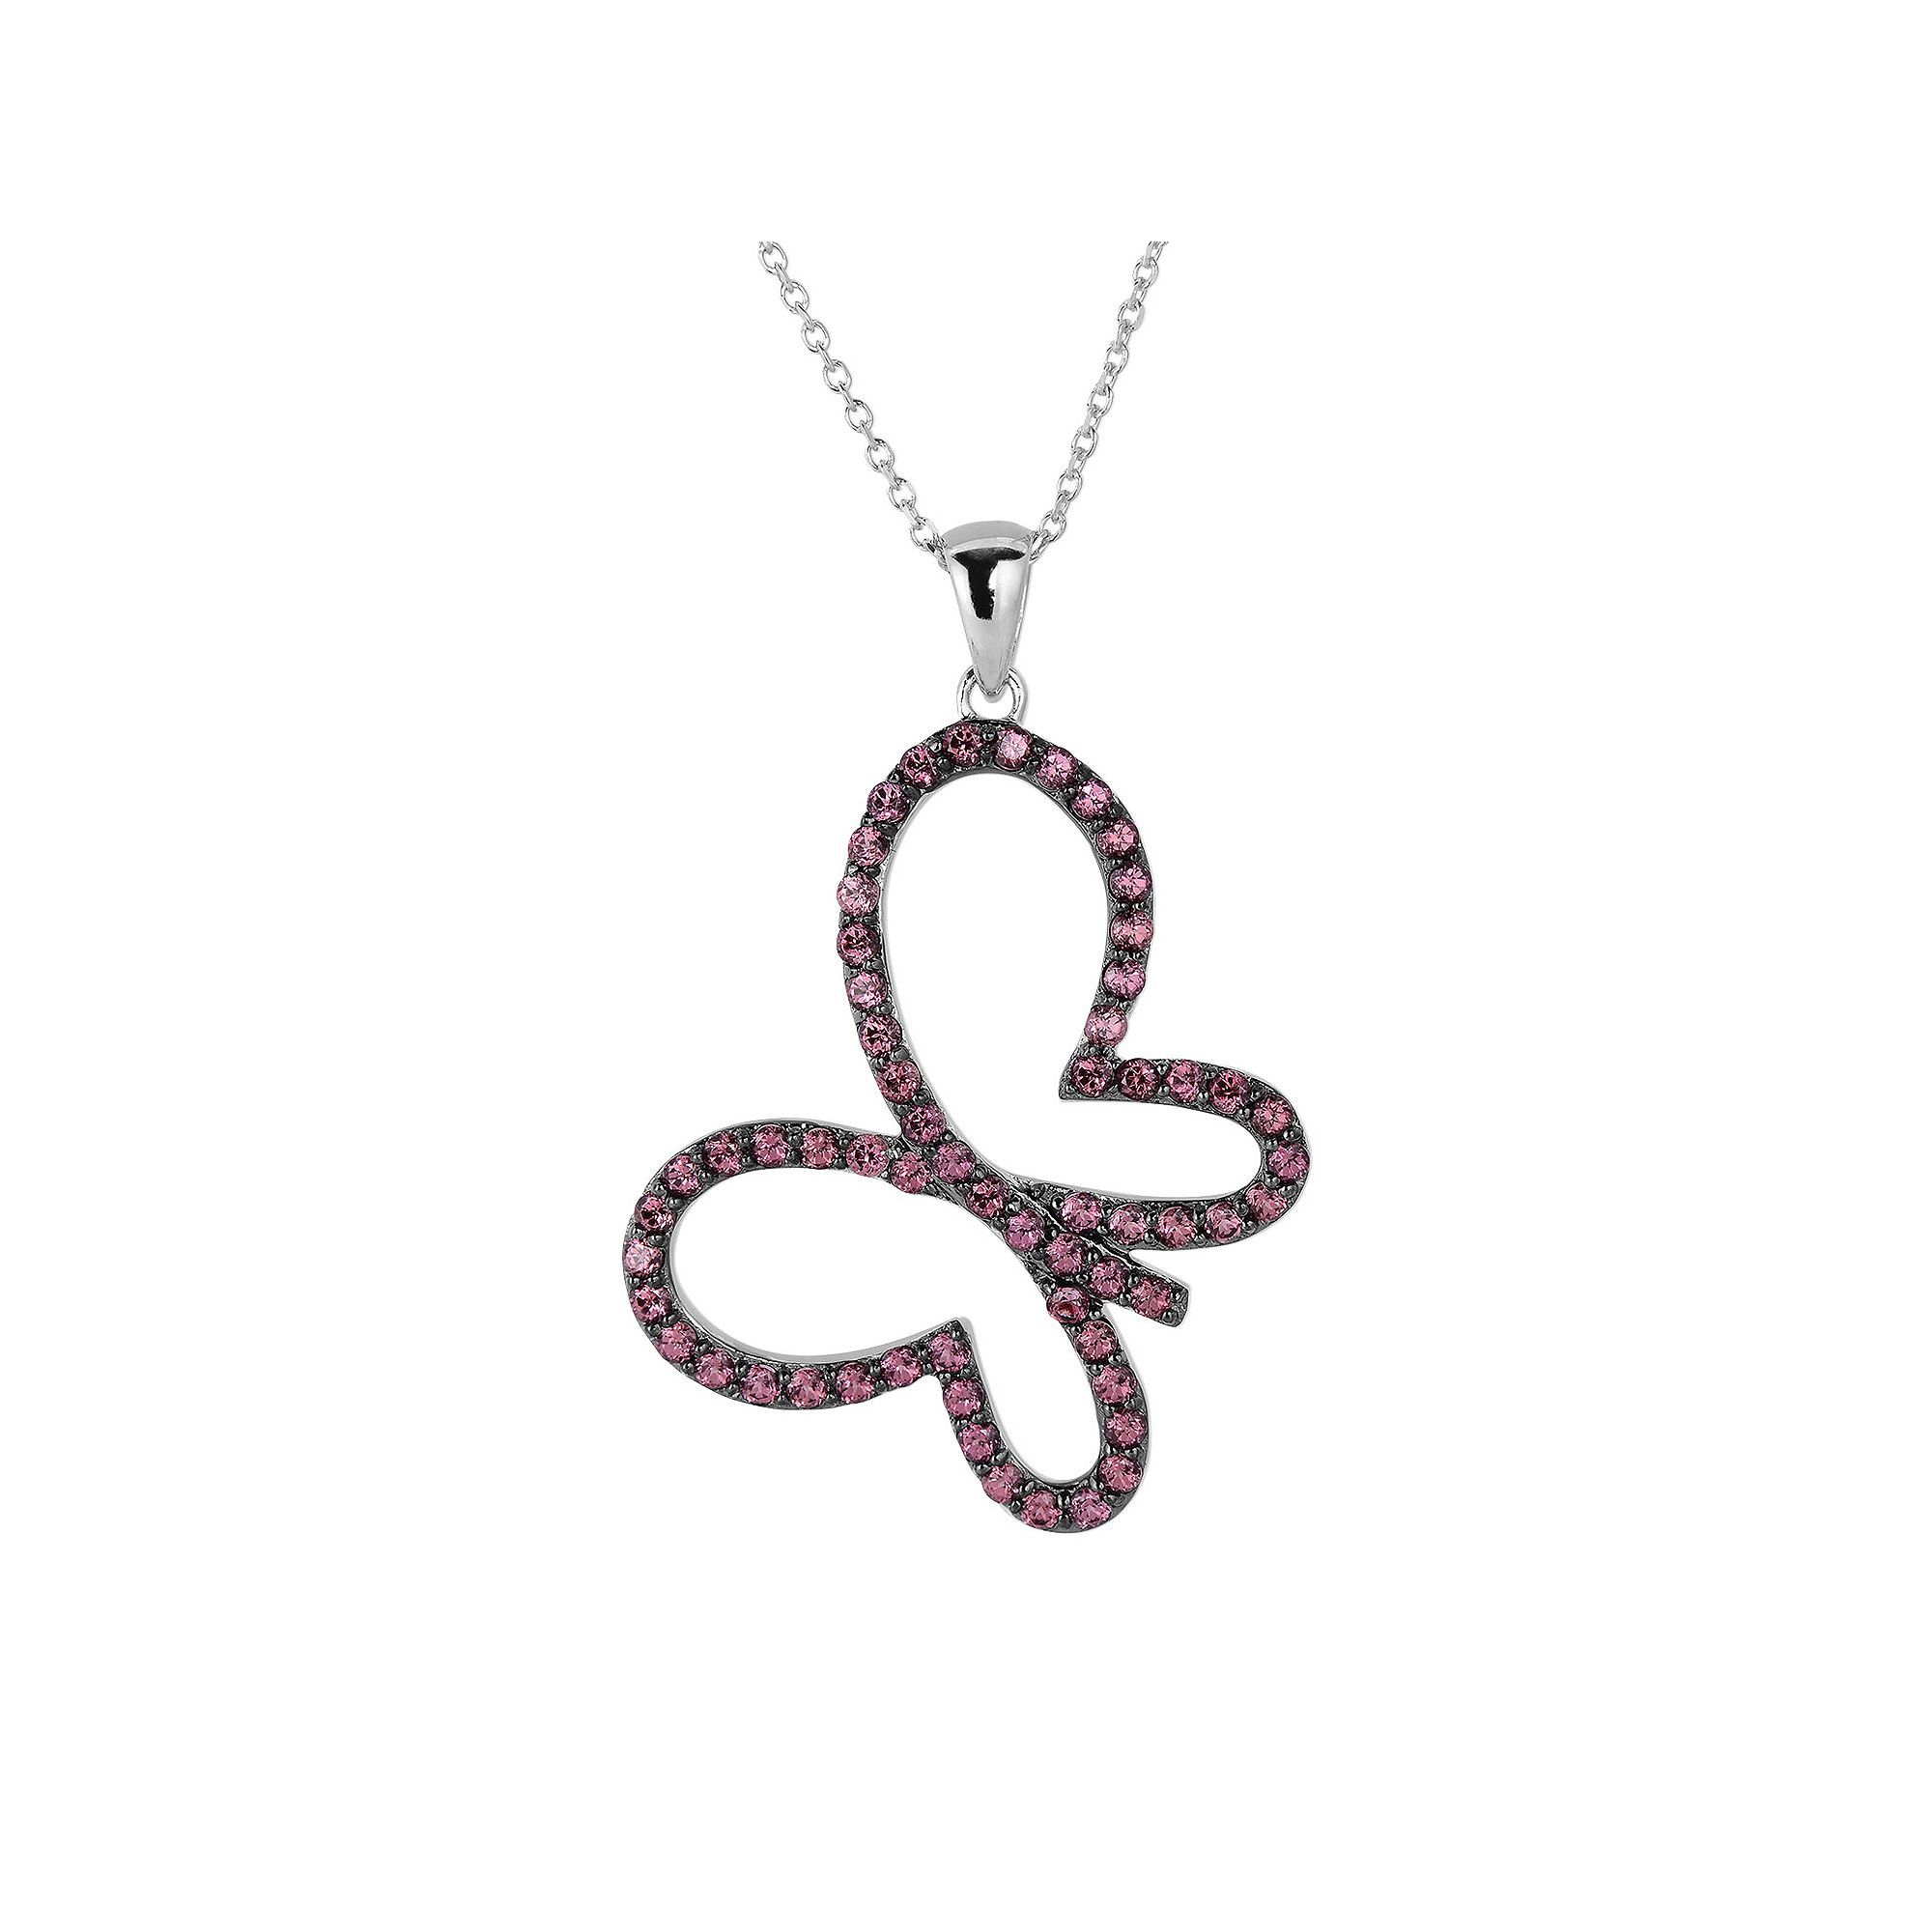 gold tw garnet in rose with diamonds pendant necklace rhodolite